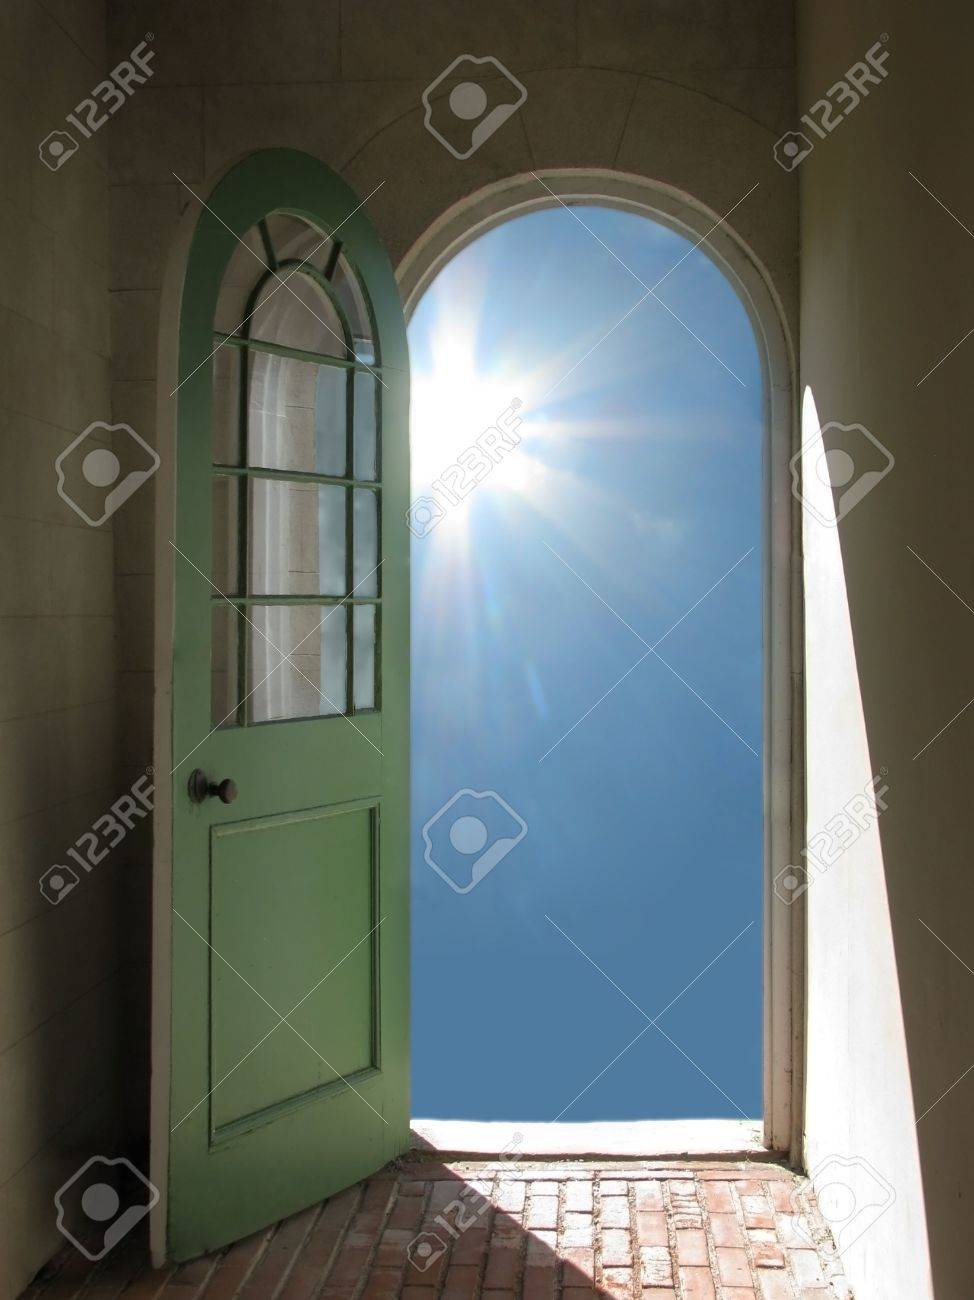 Arched doorway opening on blue sky with sun streaming in Stock Photo - 3088862